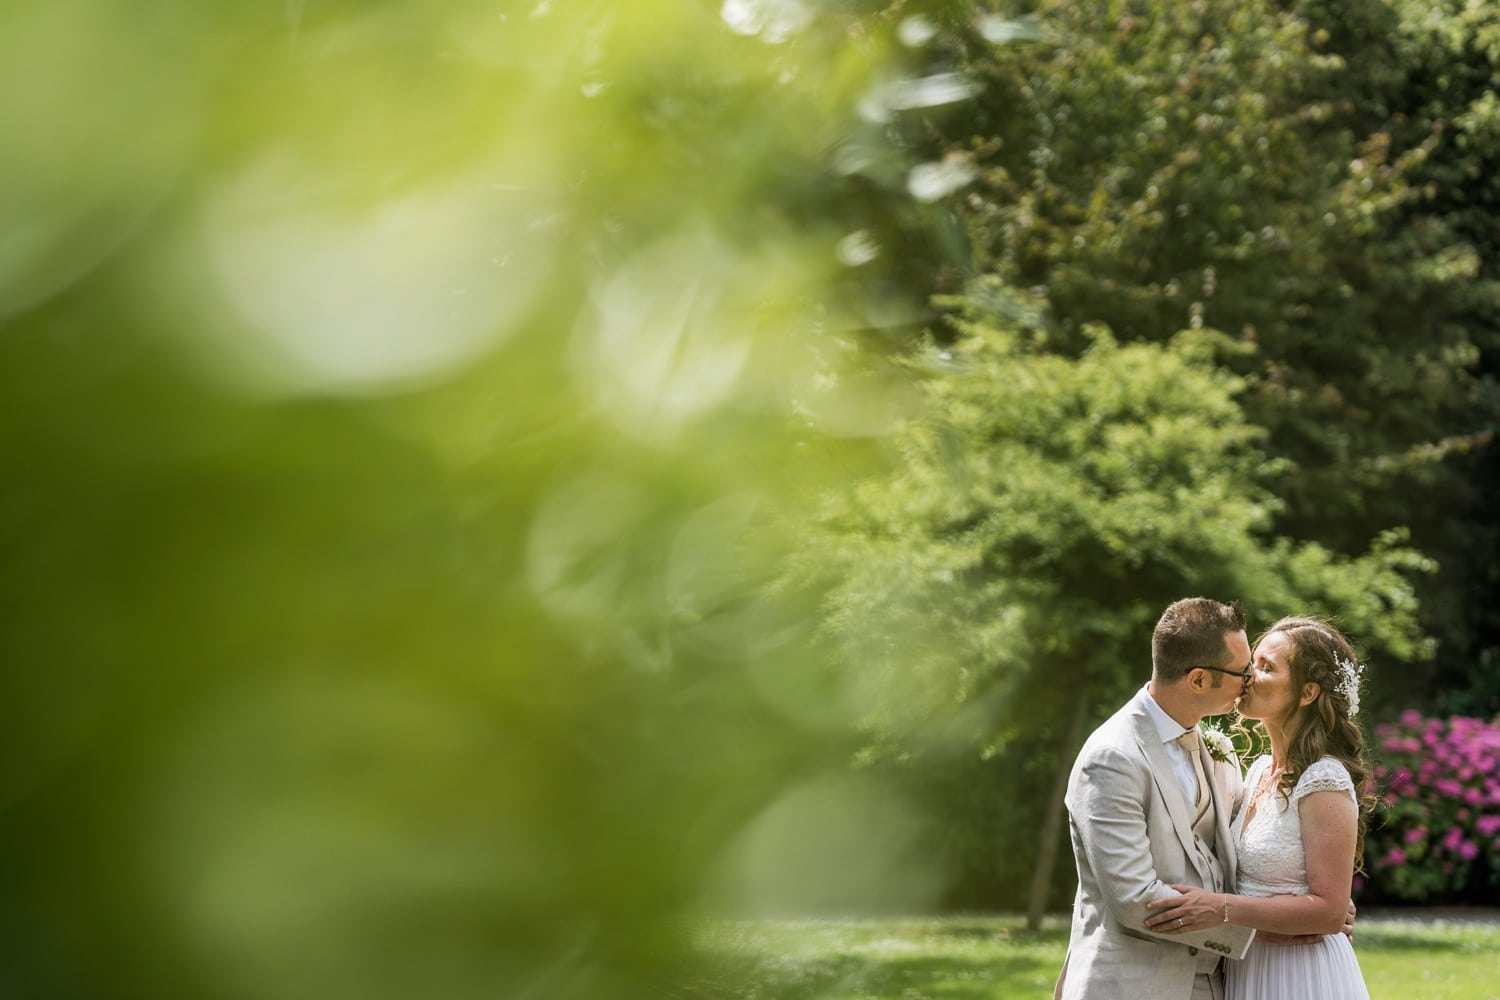 Wedding photography at Alexandra Gardens in Cardiff